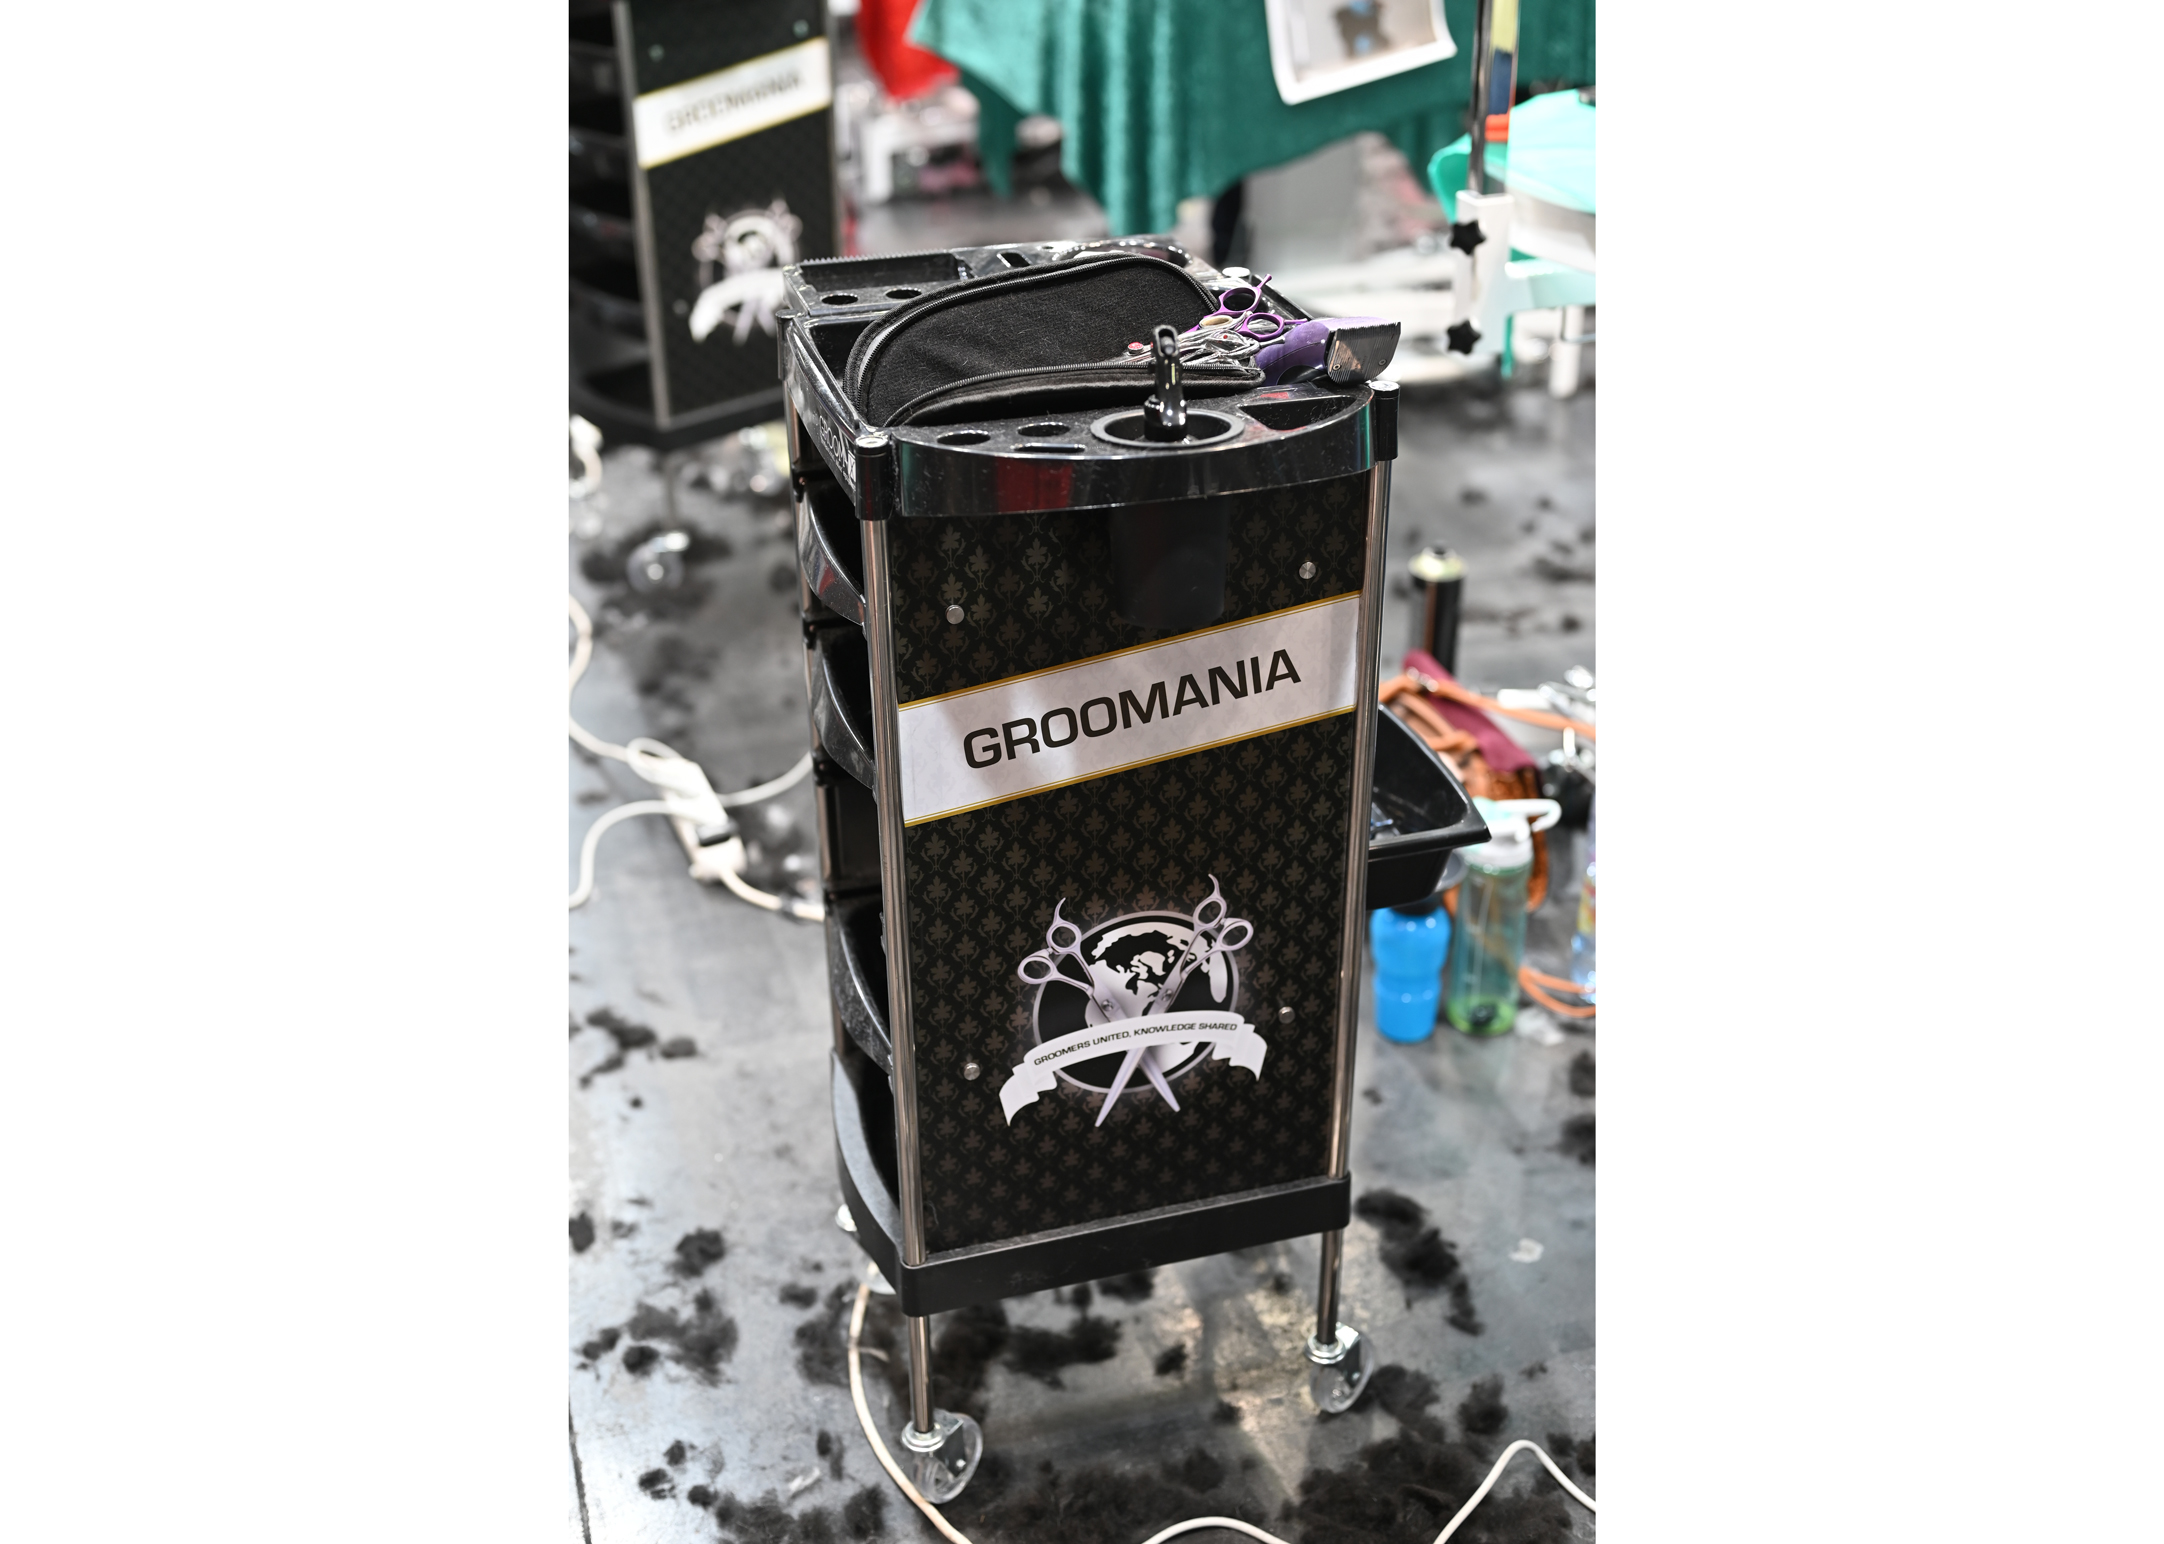 DEMO Groom-X Trolley Black Groomania - material cart